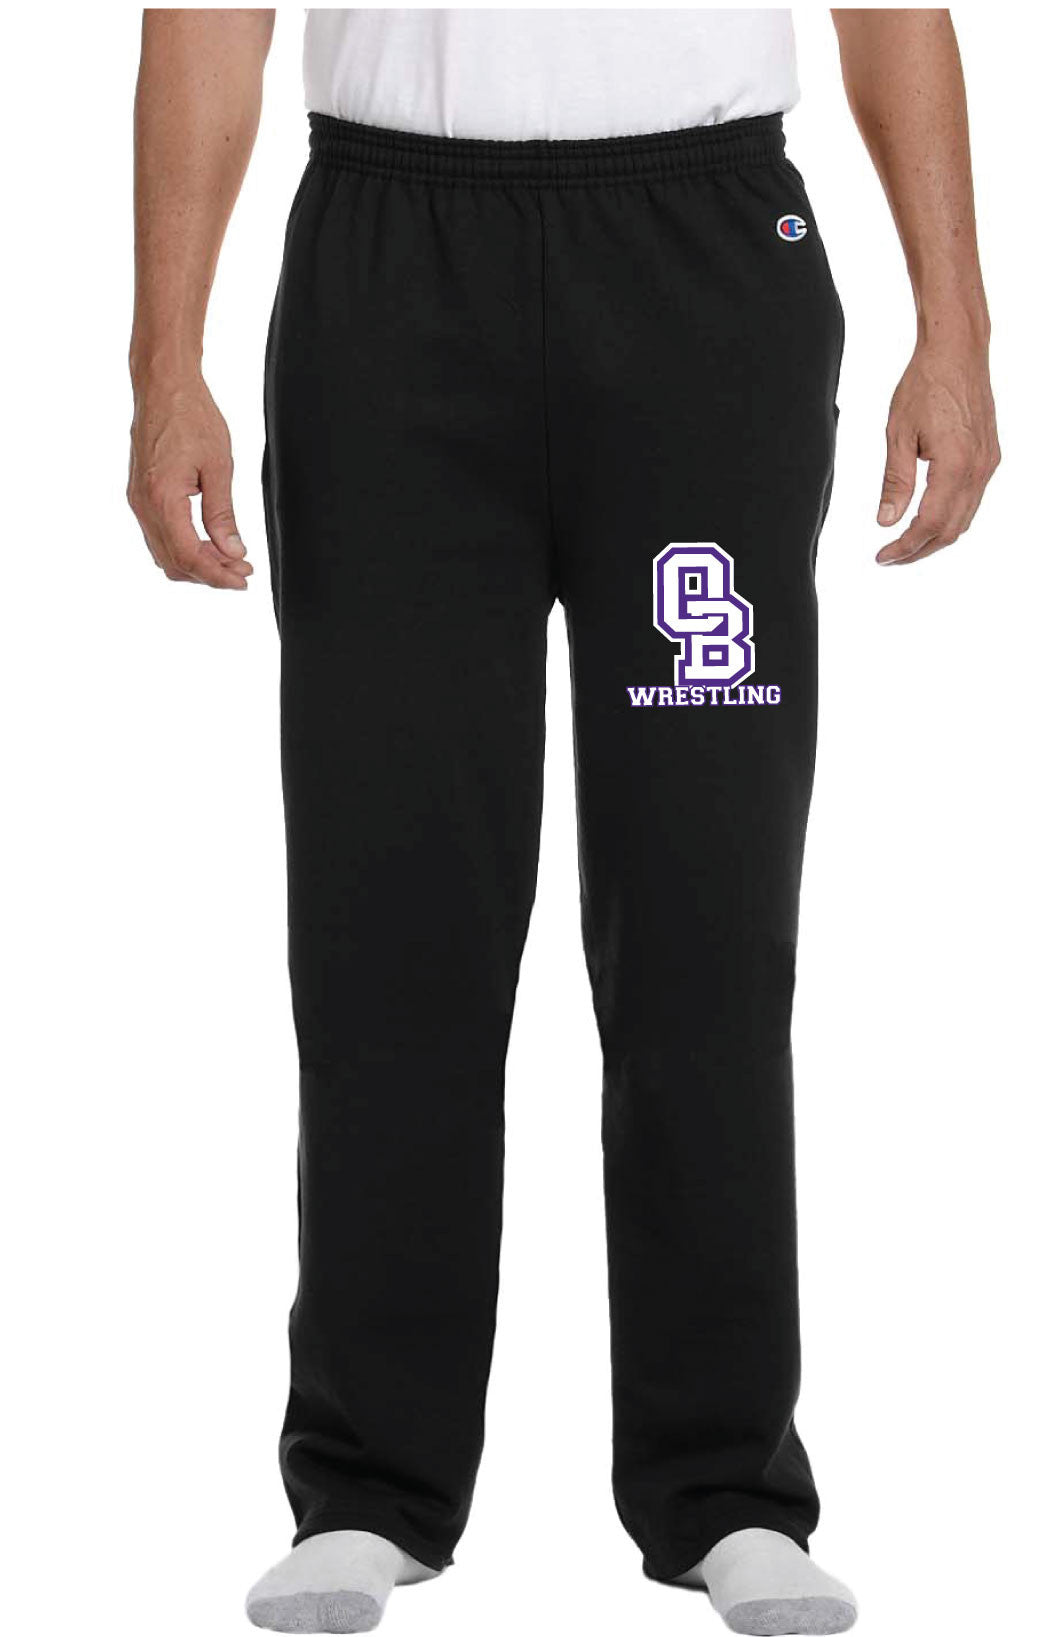 OB Wrestling Practice Sweatpants w/pockets - 5KounT2018